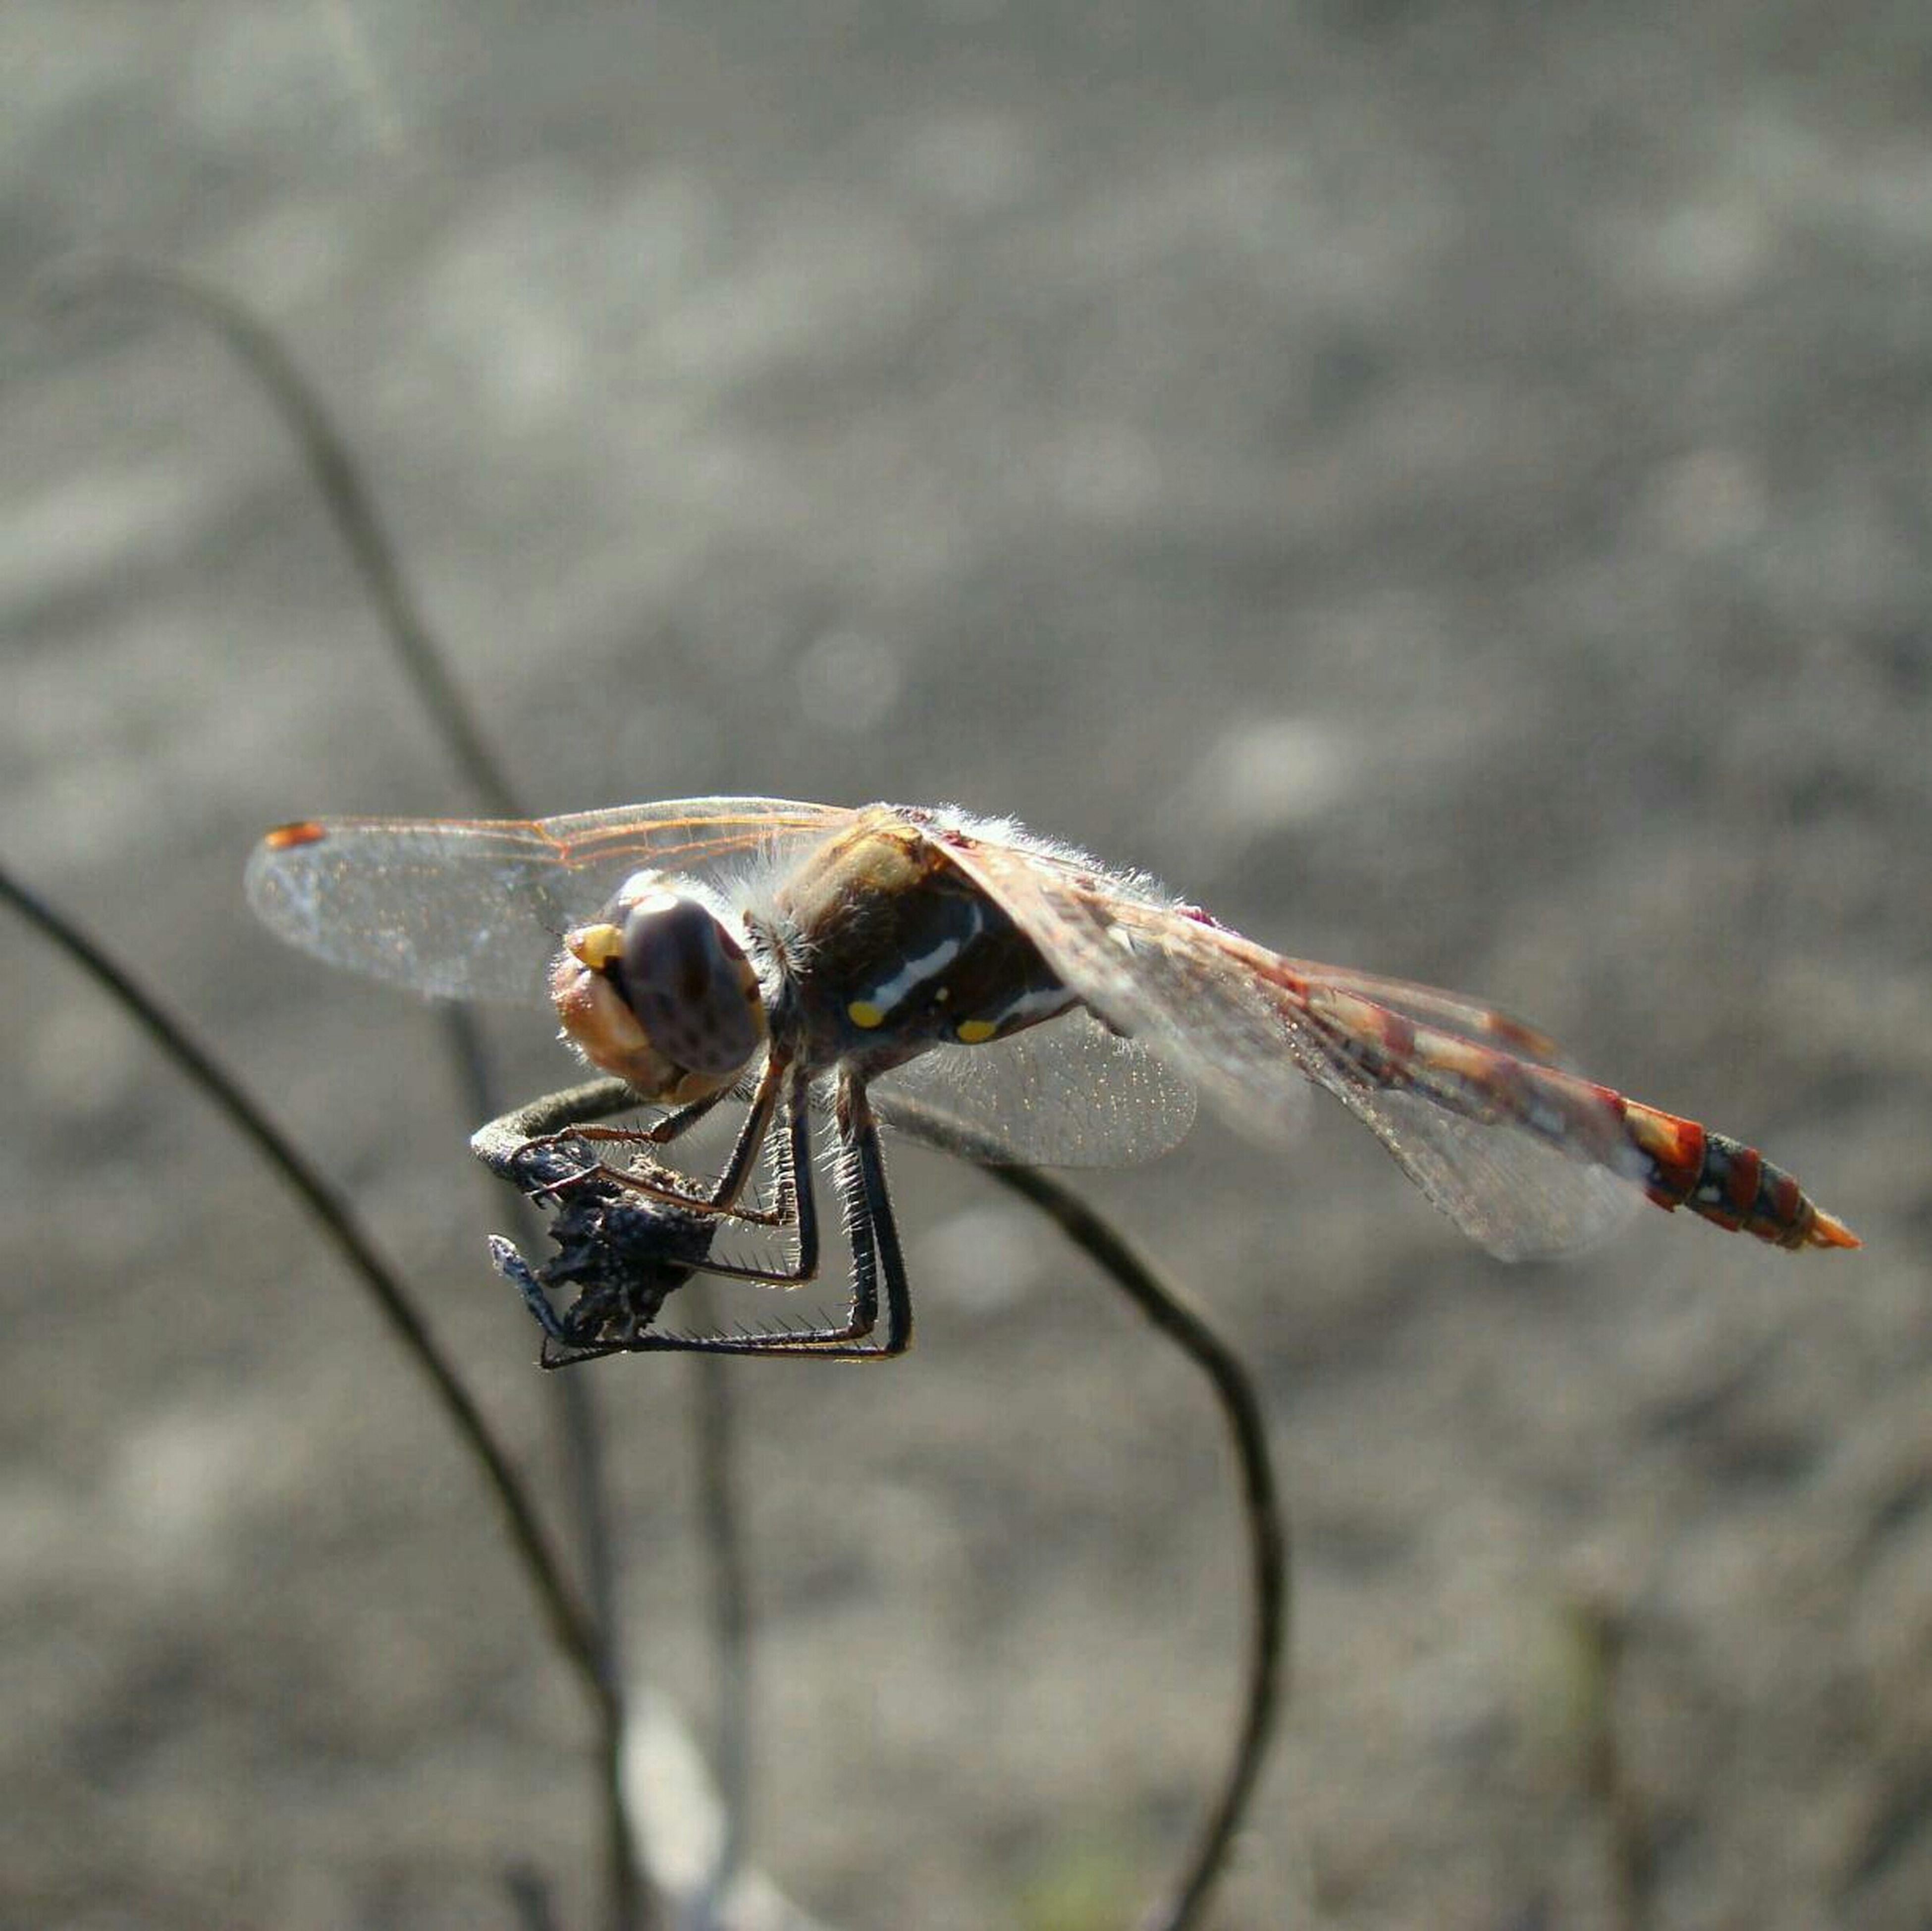 one animal, animal themes, insect, animals in the wild, wildlife, focus on foreground, selective focus, close-up, full length, day, outdoors, nature, zoology, dragonfly, no people, black color, high angle view, spider, side view, two animals